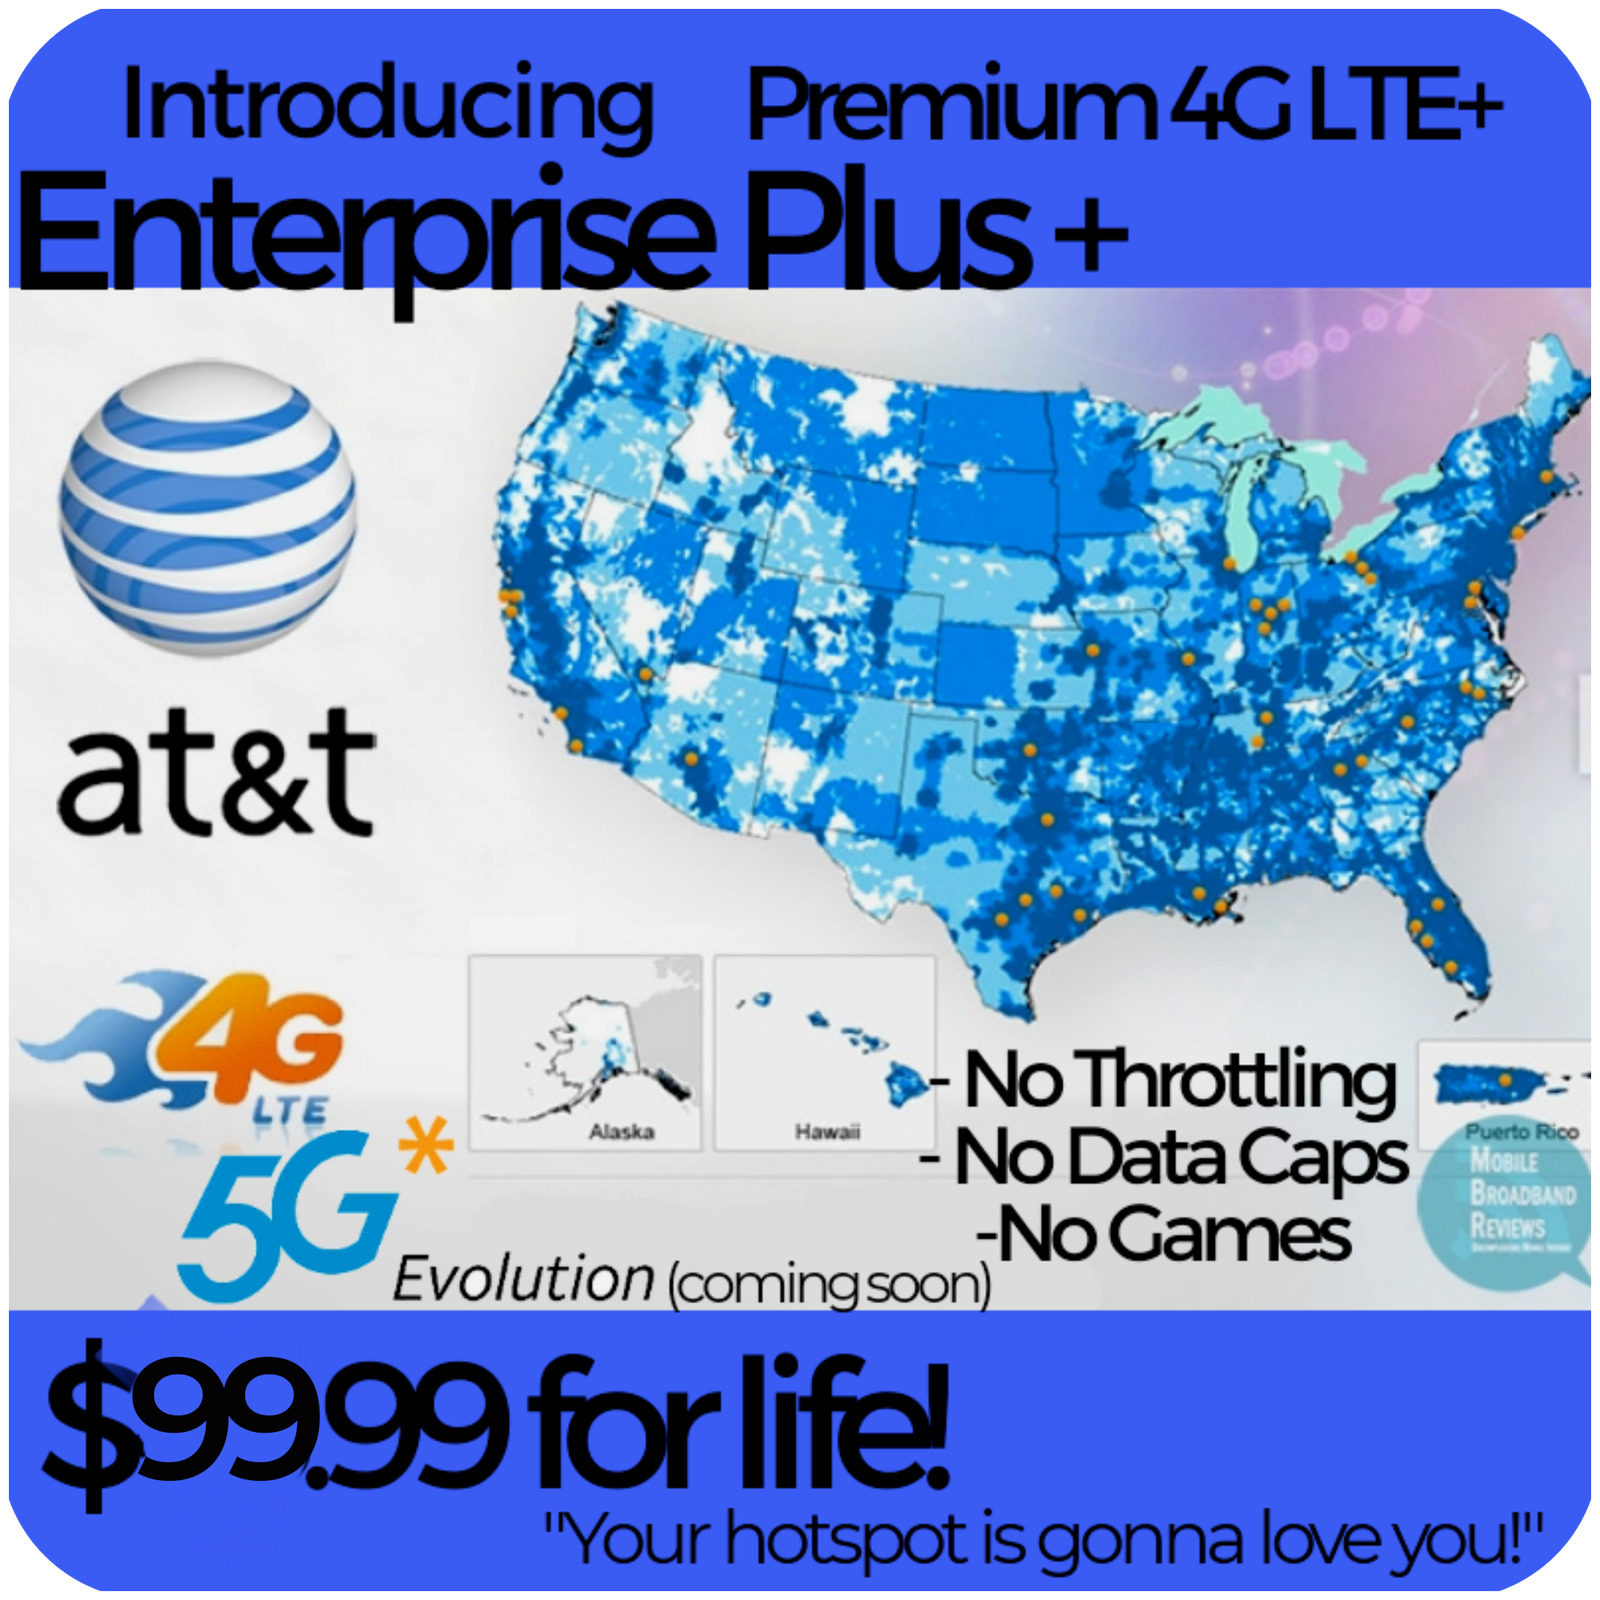 ATT 4G LTE Unlimited HOTSPOT Data $99.99 UNTHROTTLED NO CAPS TRULY UNLIMITED SIM. Buy it now for 99.99